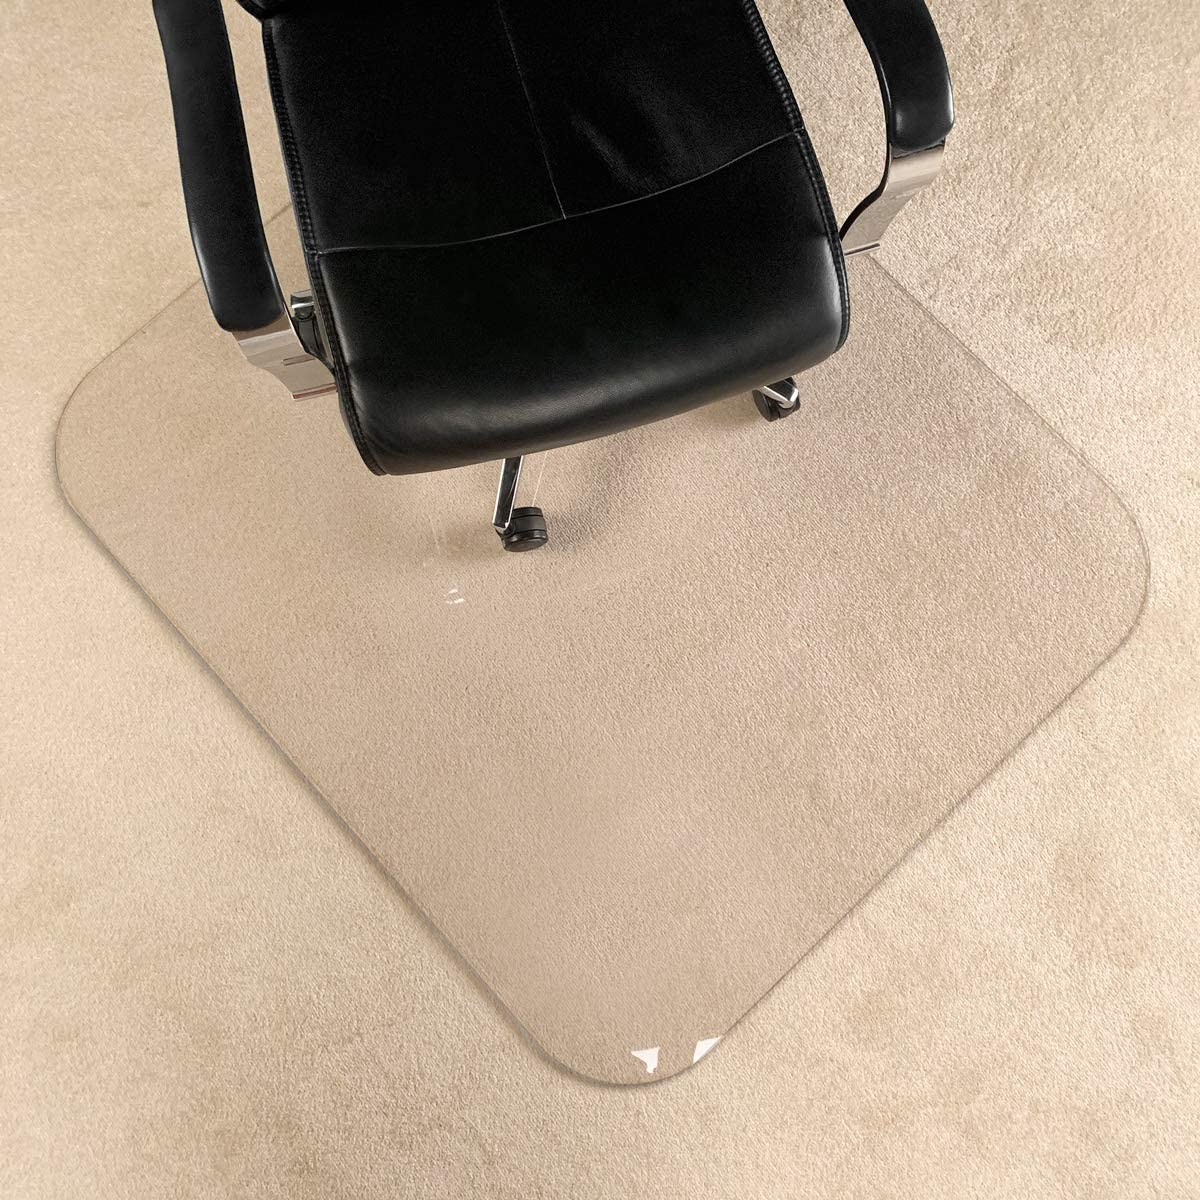 "[UpgradedVersion] Crystal Clear 1/5"" Thick 47"" x 40"" Heavy Duty Hard Chair Mat, Can be Used on Carpet or Hard Floor"